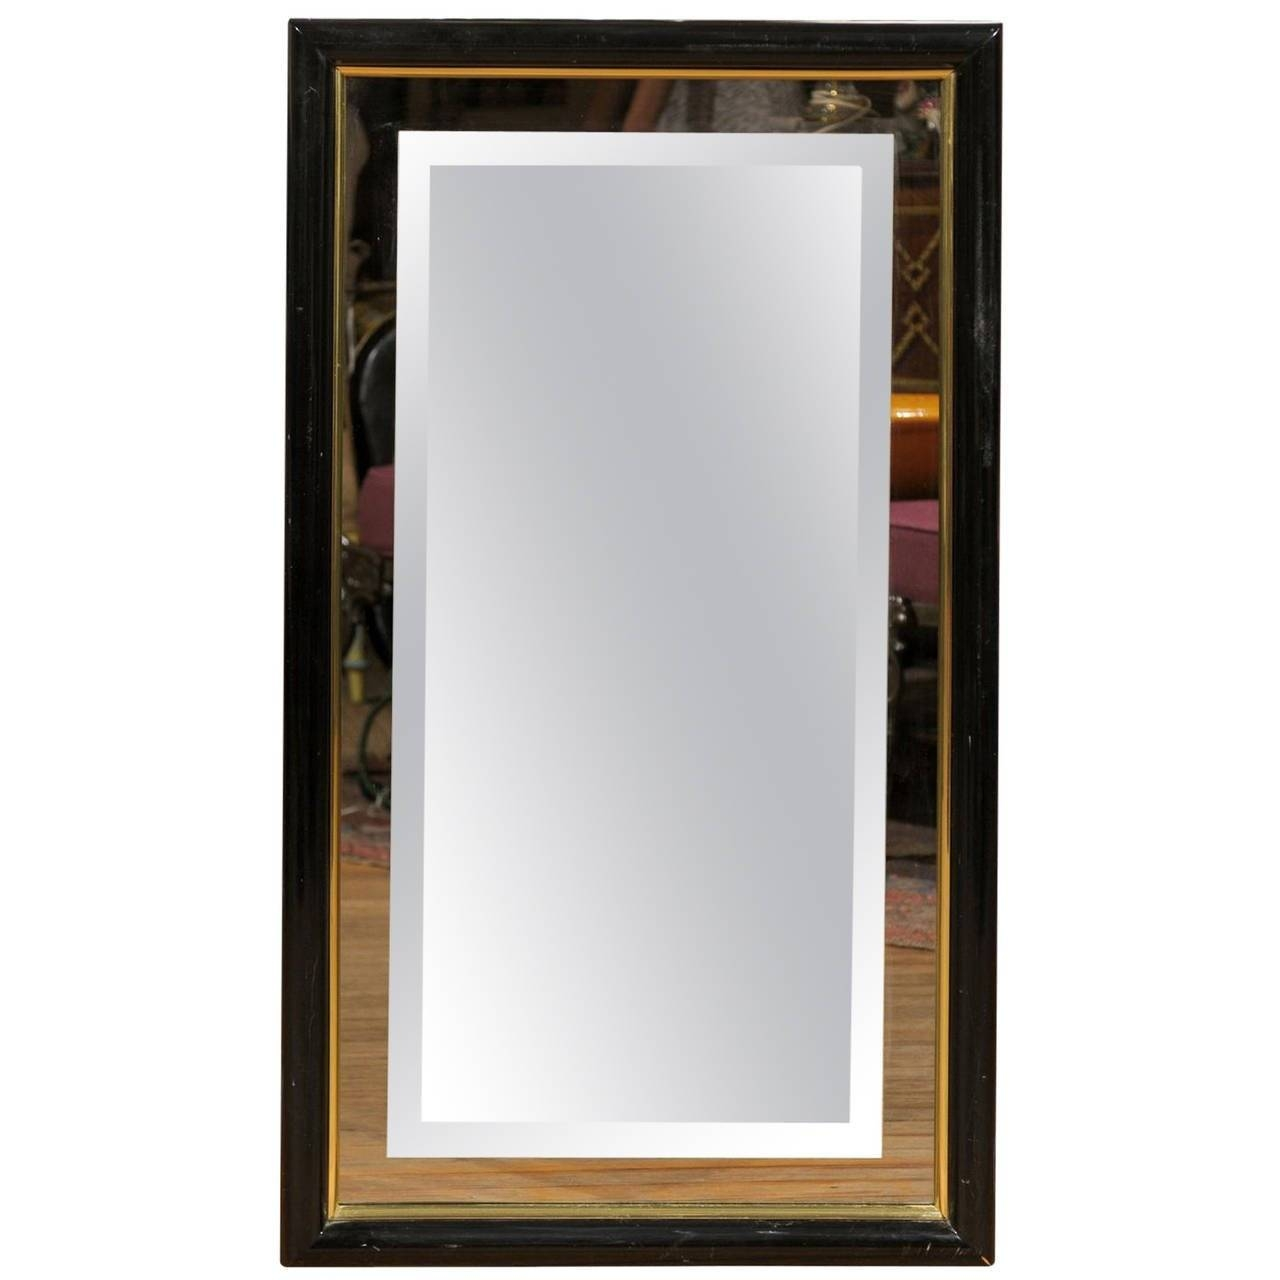 Smoked And Beveled Glass Wall Mirror In A Black And Brass Frame Inside Black Bevelled Mirrors (View 13 of 13)